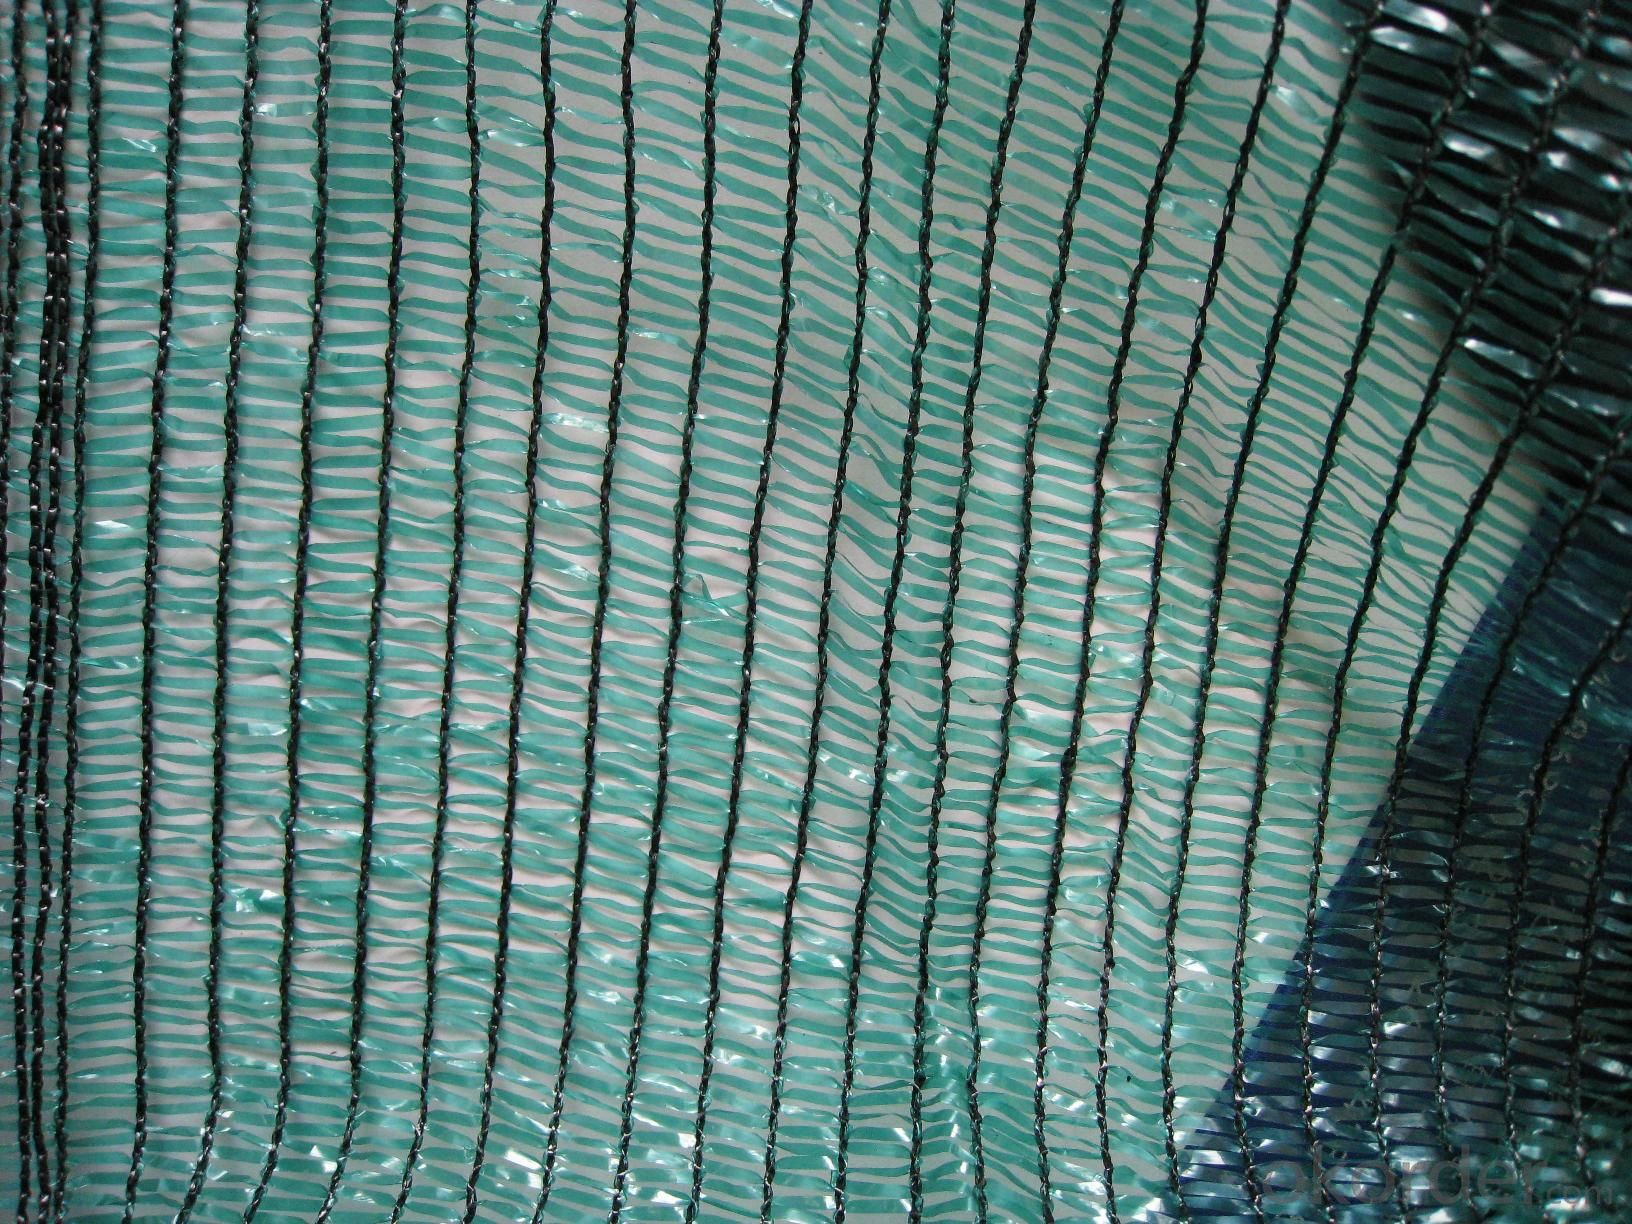 Hdpe green color 75% Anti UV Monofilament Greenhouse Sunshade Netting